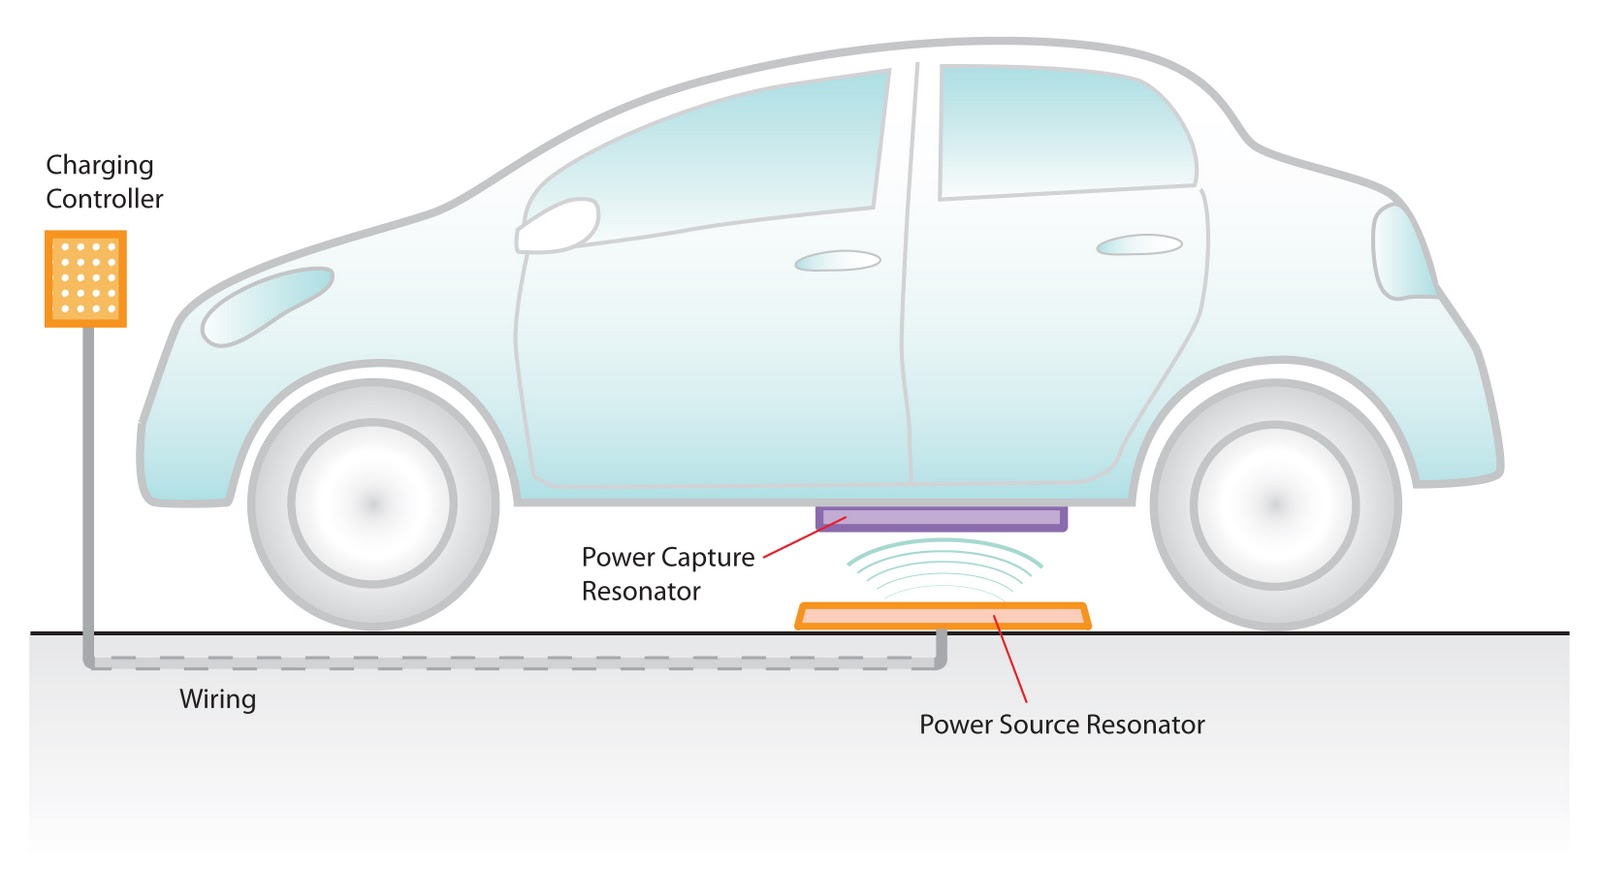 wireless car diagram wiring diagram world wireless remote car circuit diagram wireless car diagram [ 1600 x 873 Pixel ]